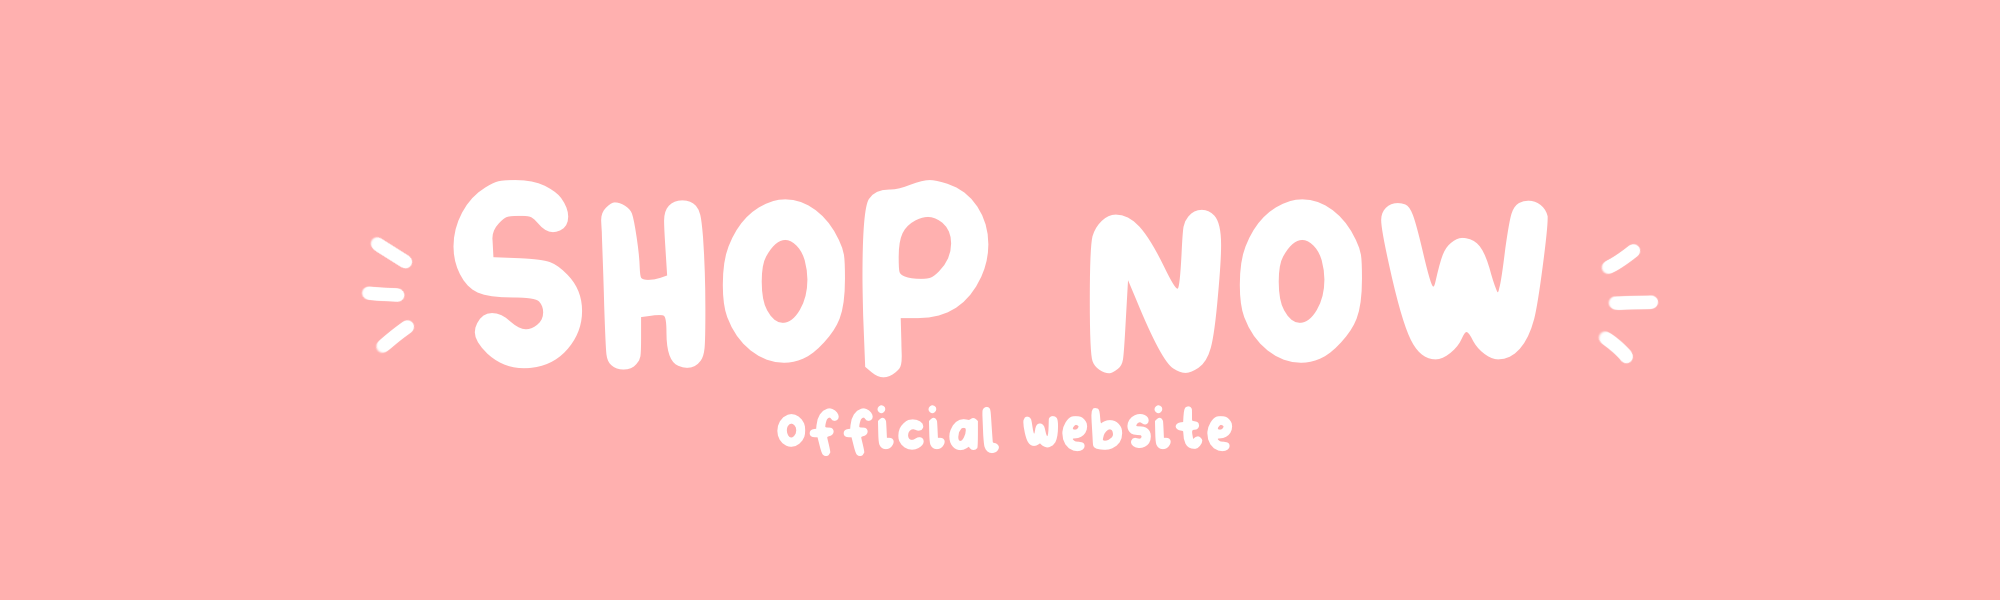 SHOPCHYUMI Home Page - Shop now | Stationery made for you